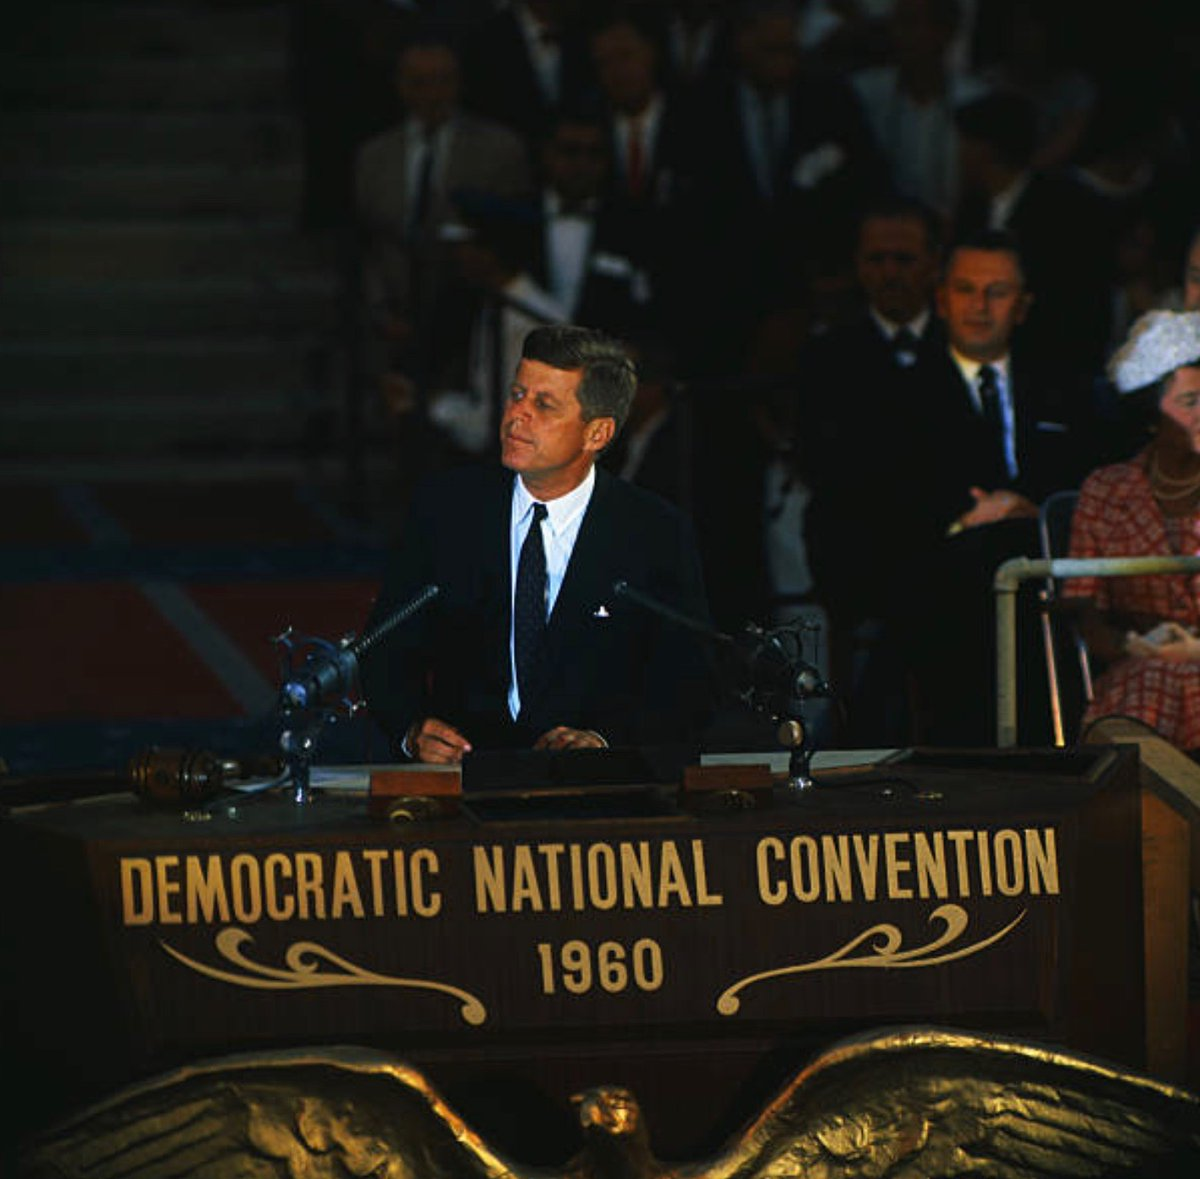 JFK accepts Democratic nomination for President, 60 years ago tomorrow night: #Getty